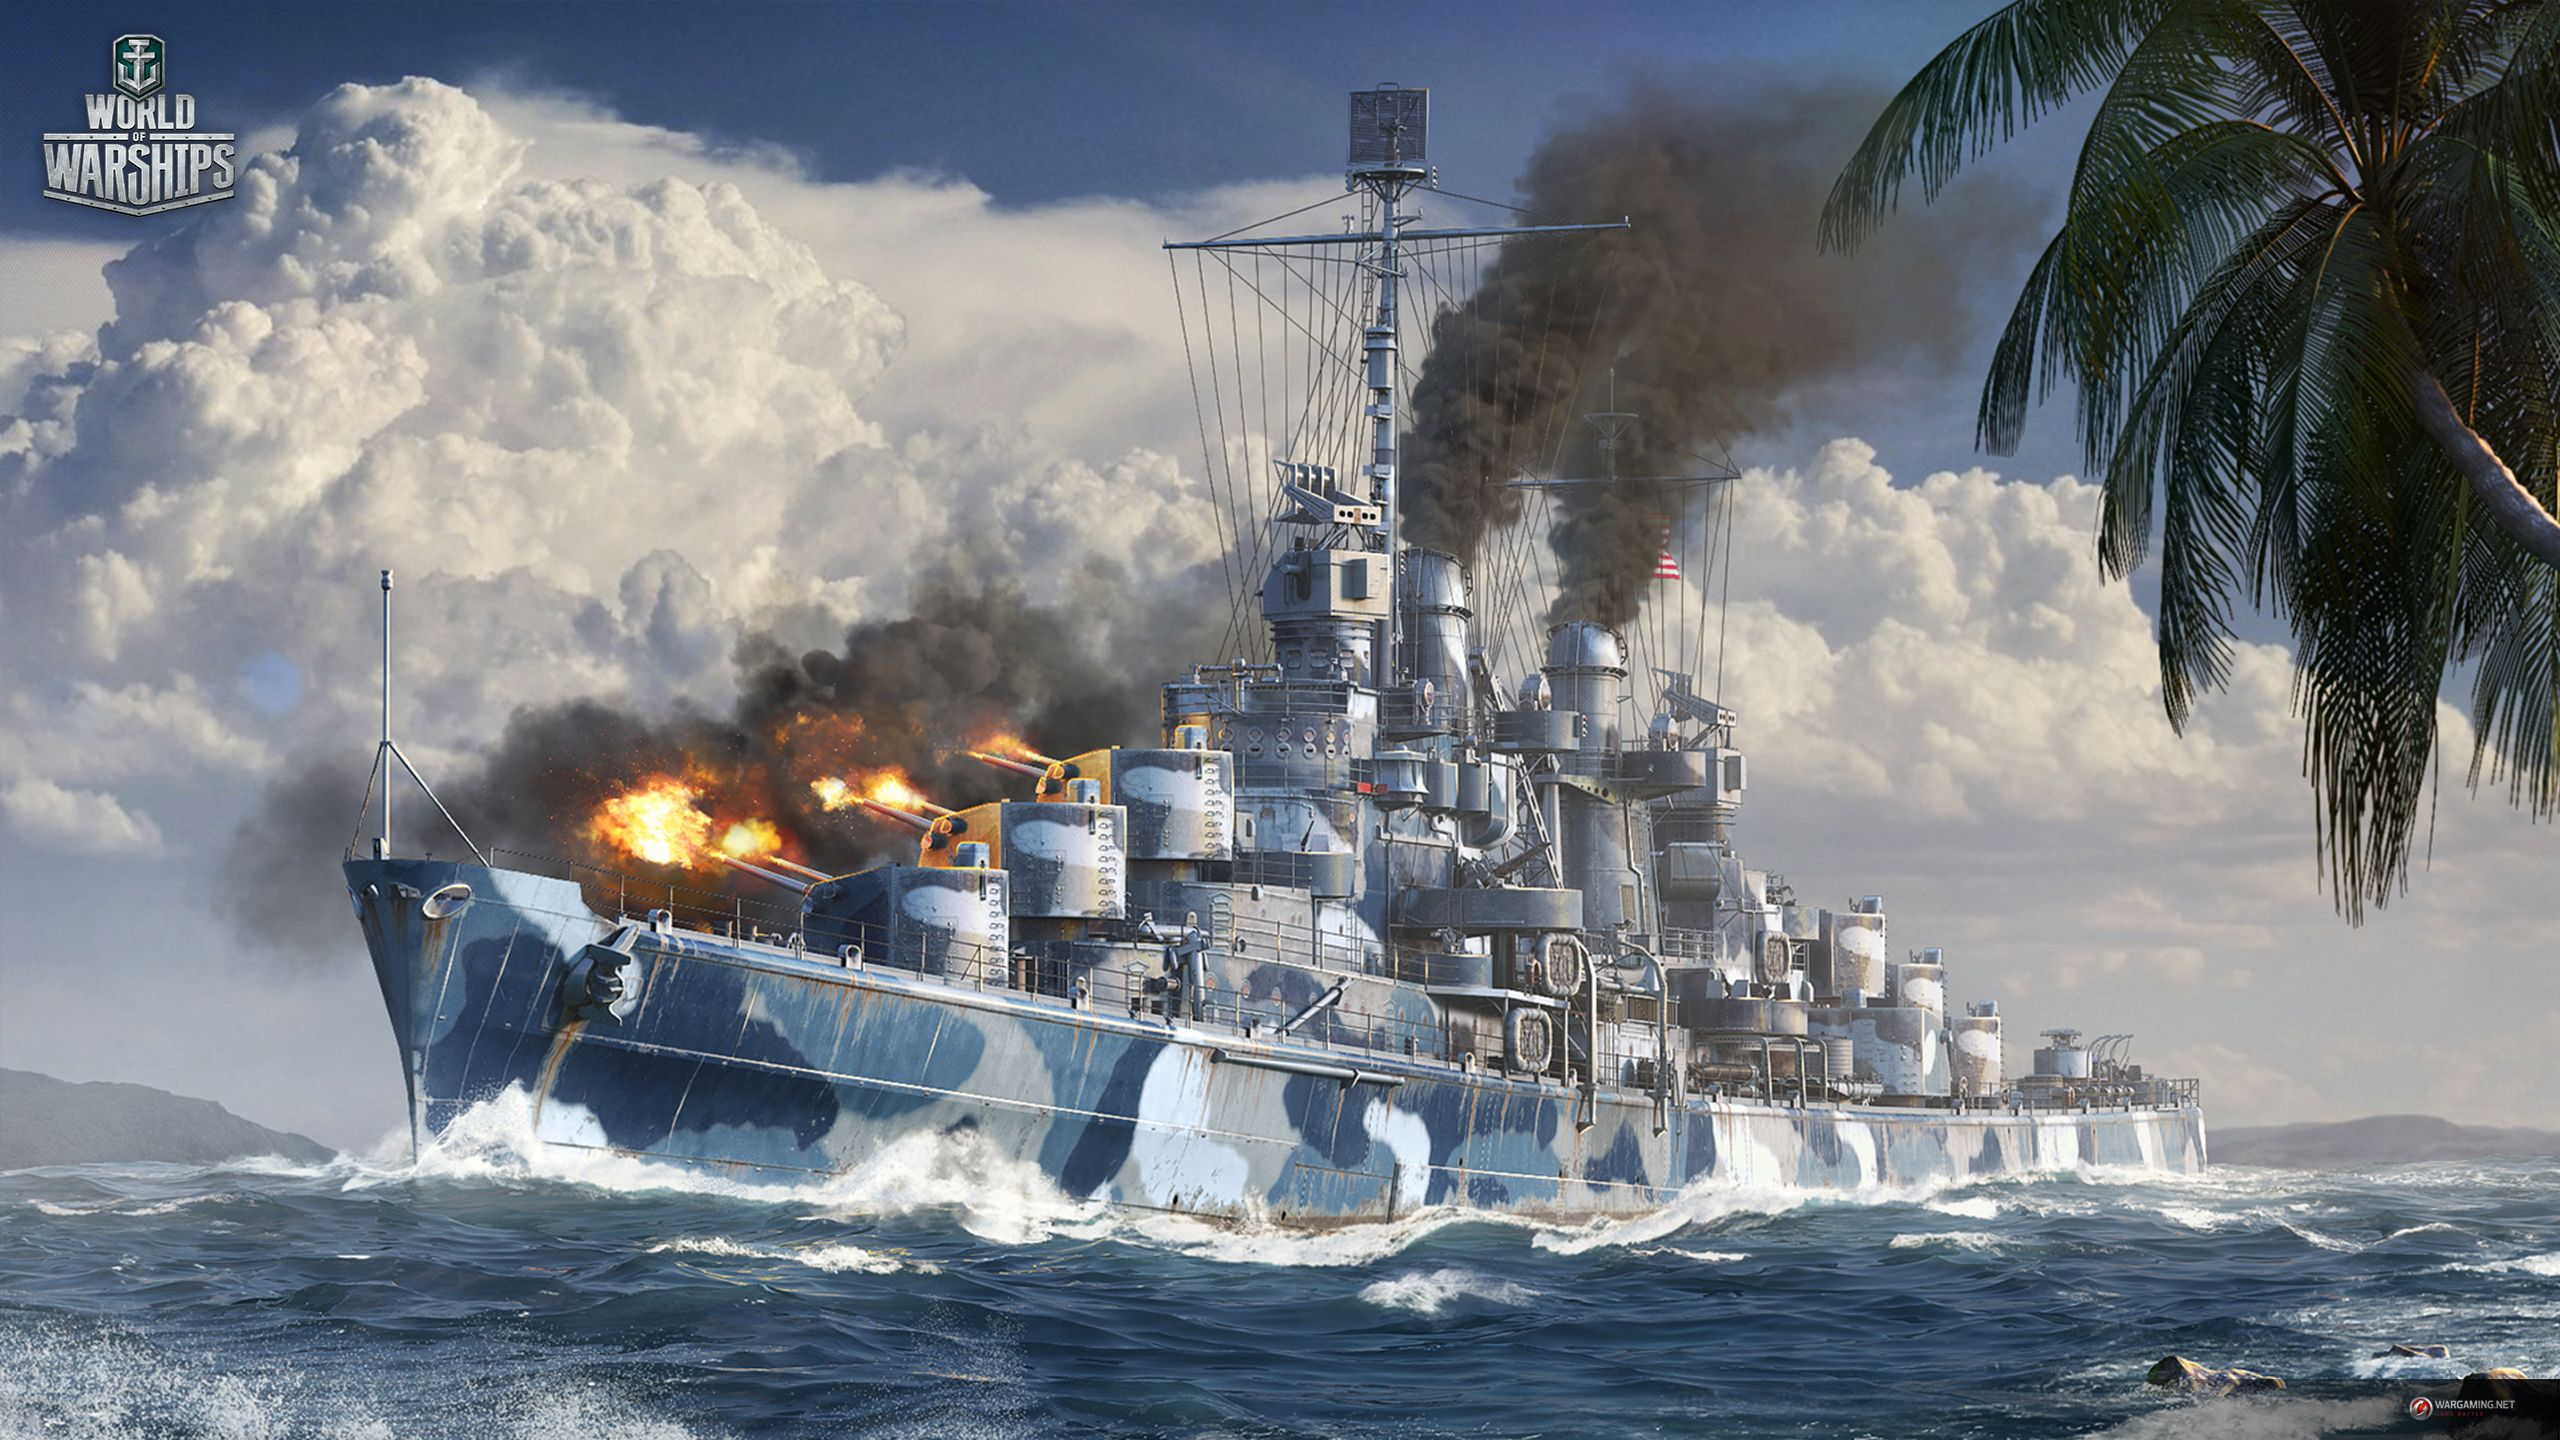 Uss Cruiser Atlanta World Of Warships Wallpaper Model